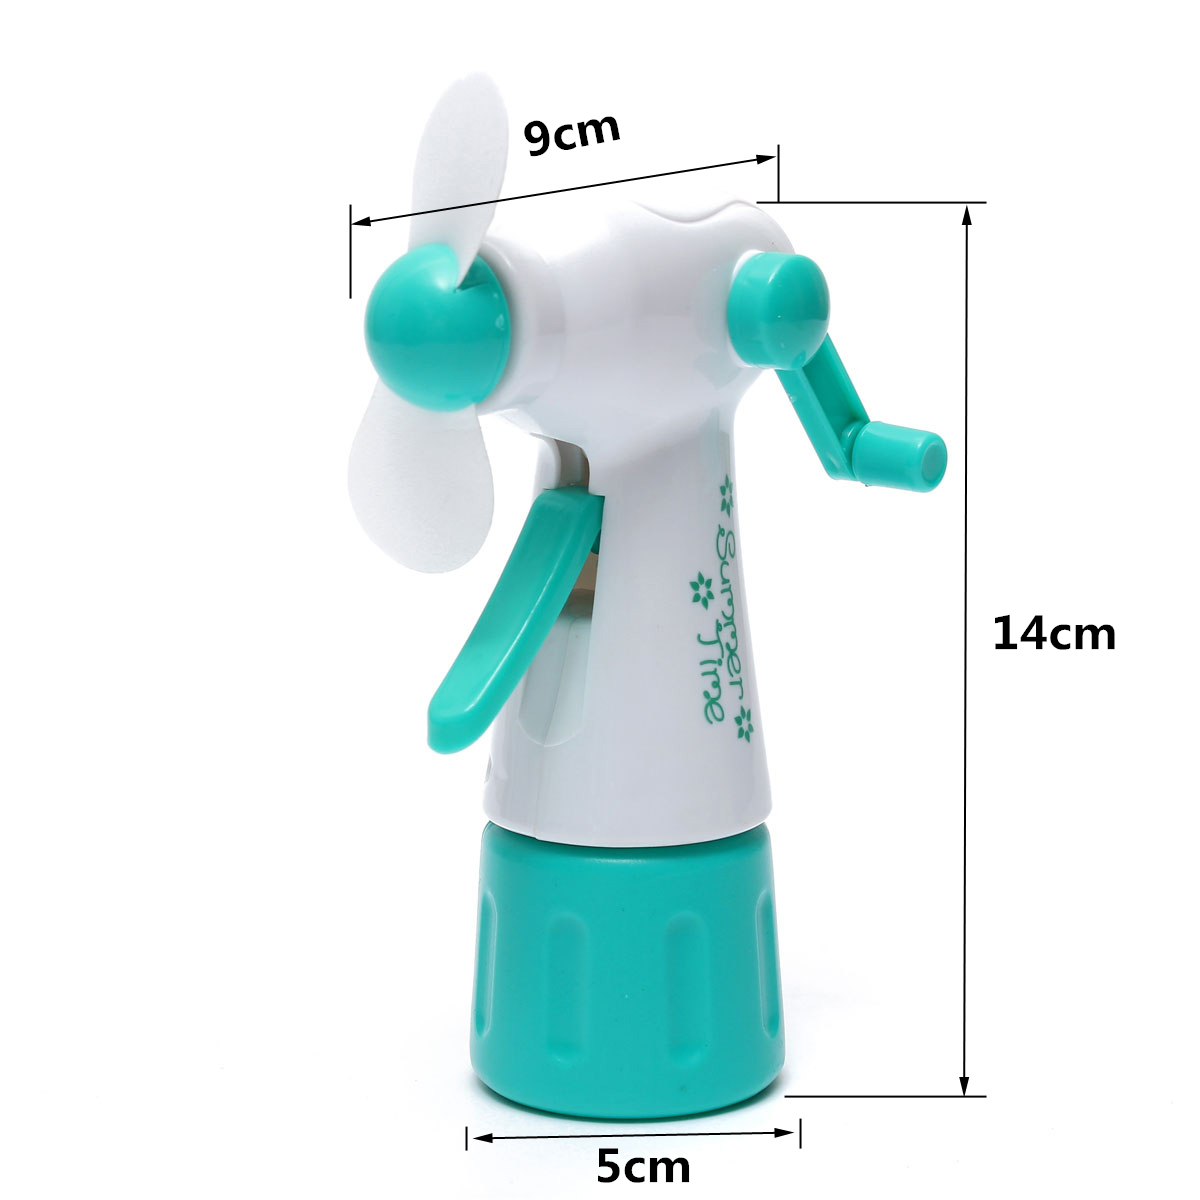 Mist Fan Bottle : Portable handheld cooling water spray mist fan